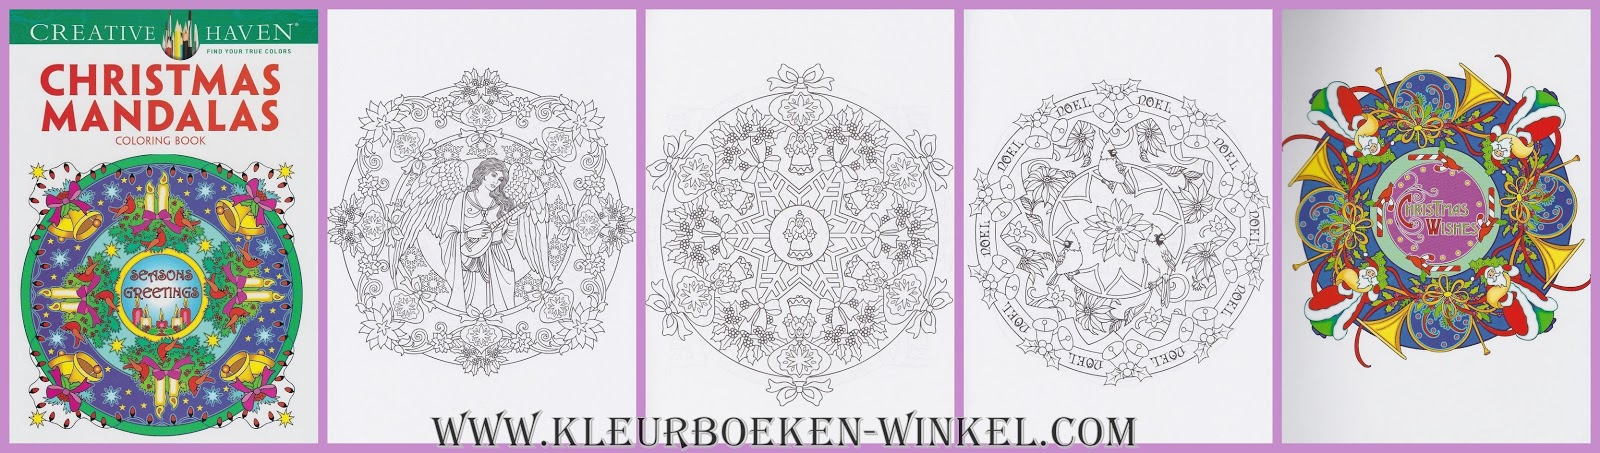 CH 63 christmas mandalas, kleurboek Creative Haven, kerst en winter